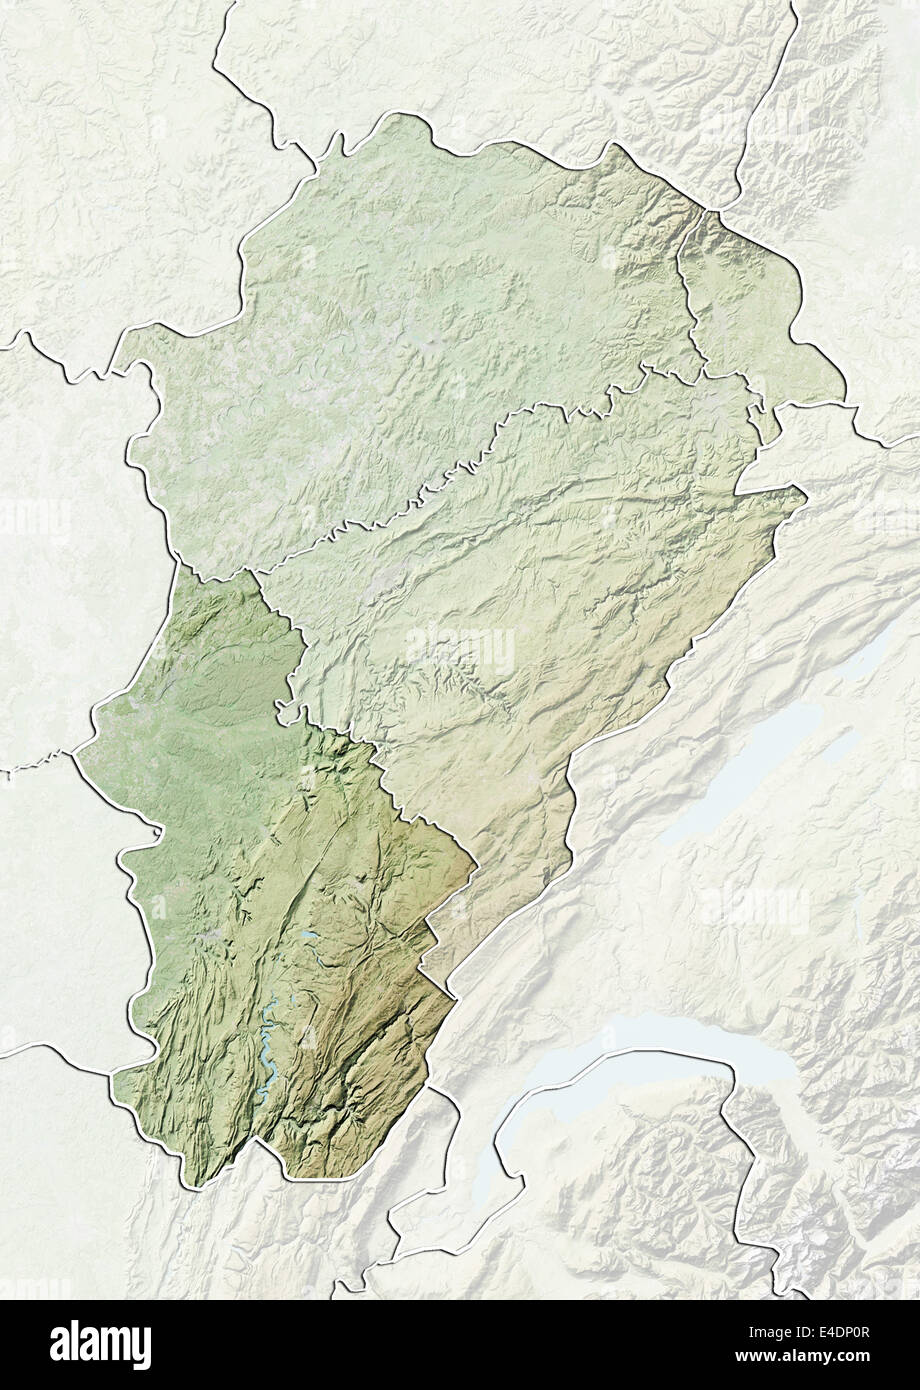 Map Of France Jura.Departement Of Jura France Relief Map Stock Photo 71602743 Alamy